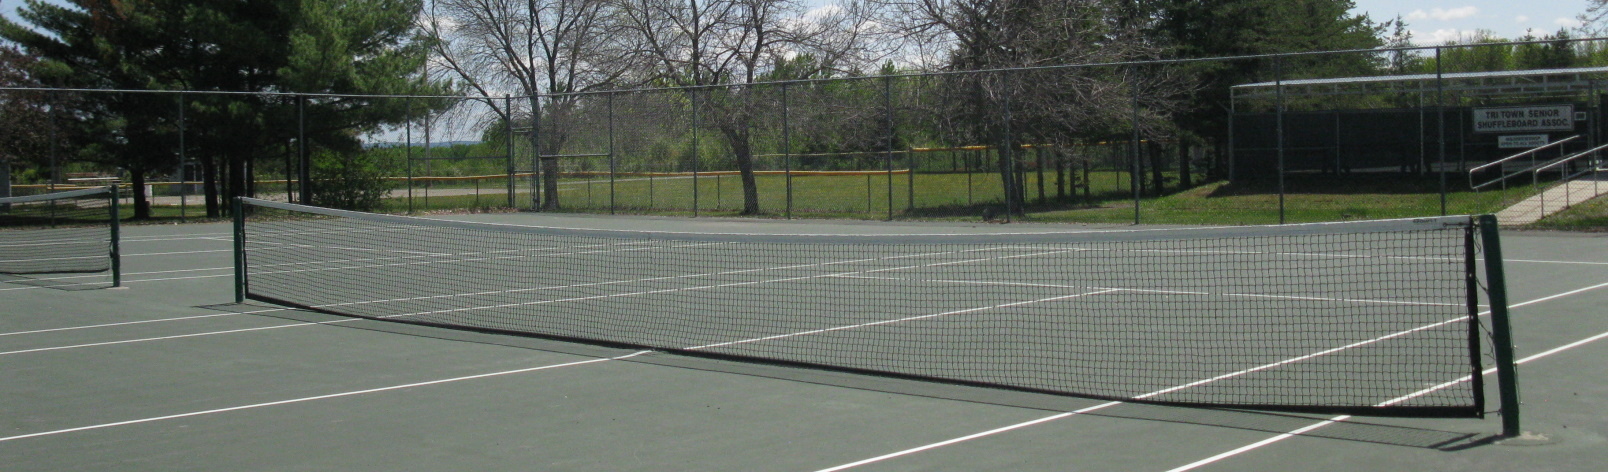 Tennis Court in Haileybury